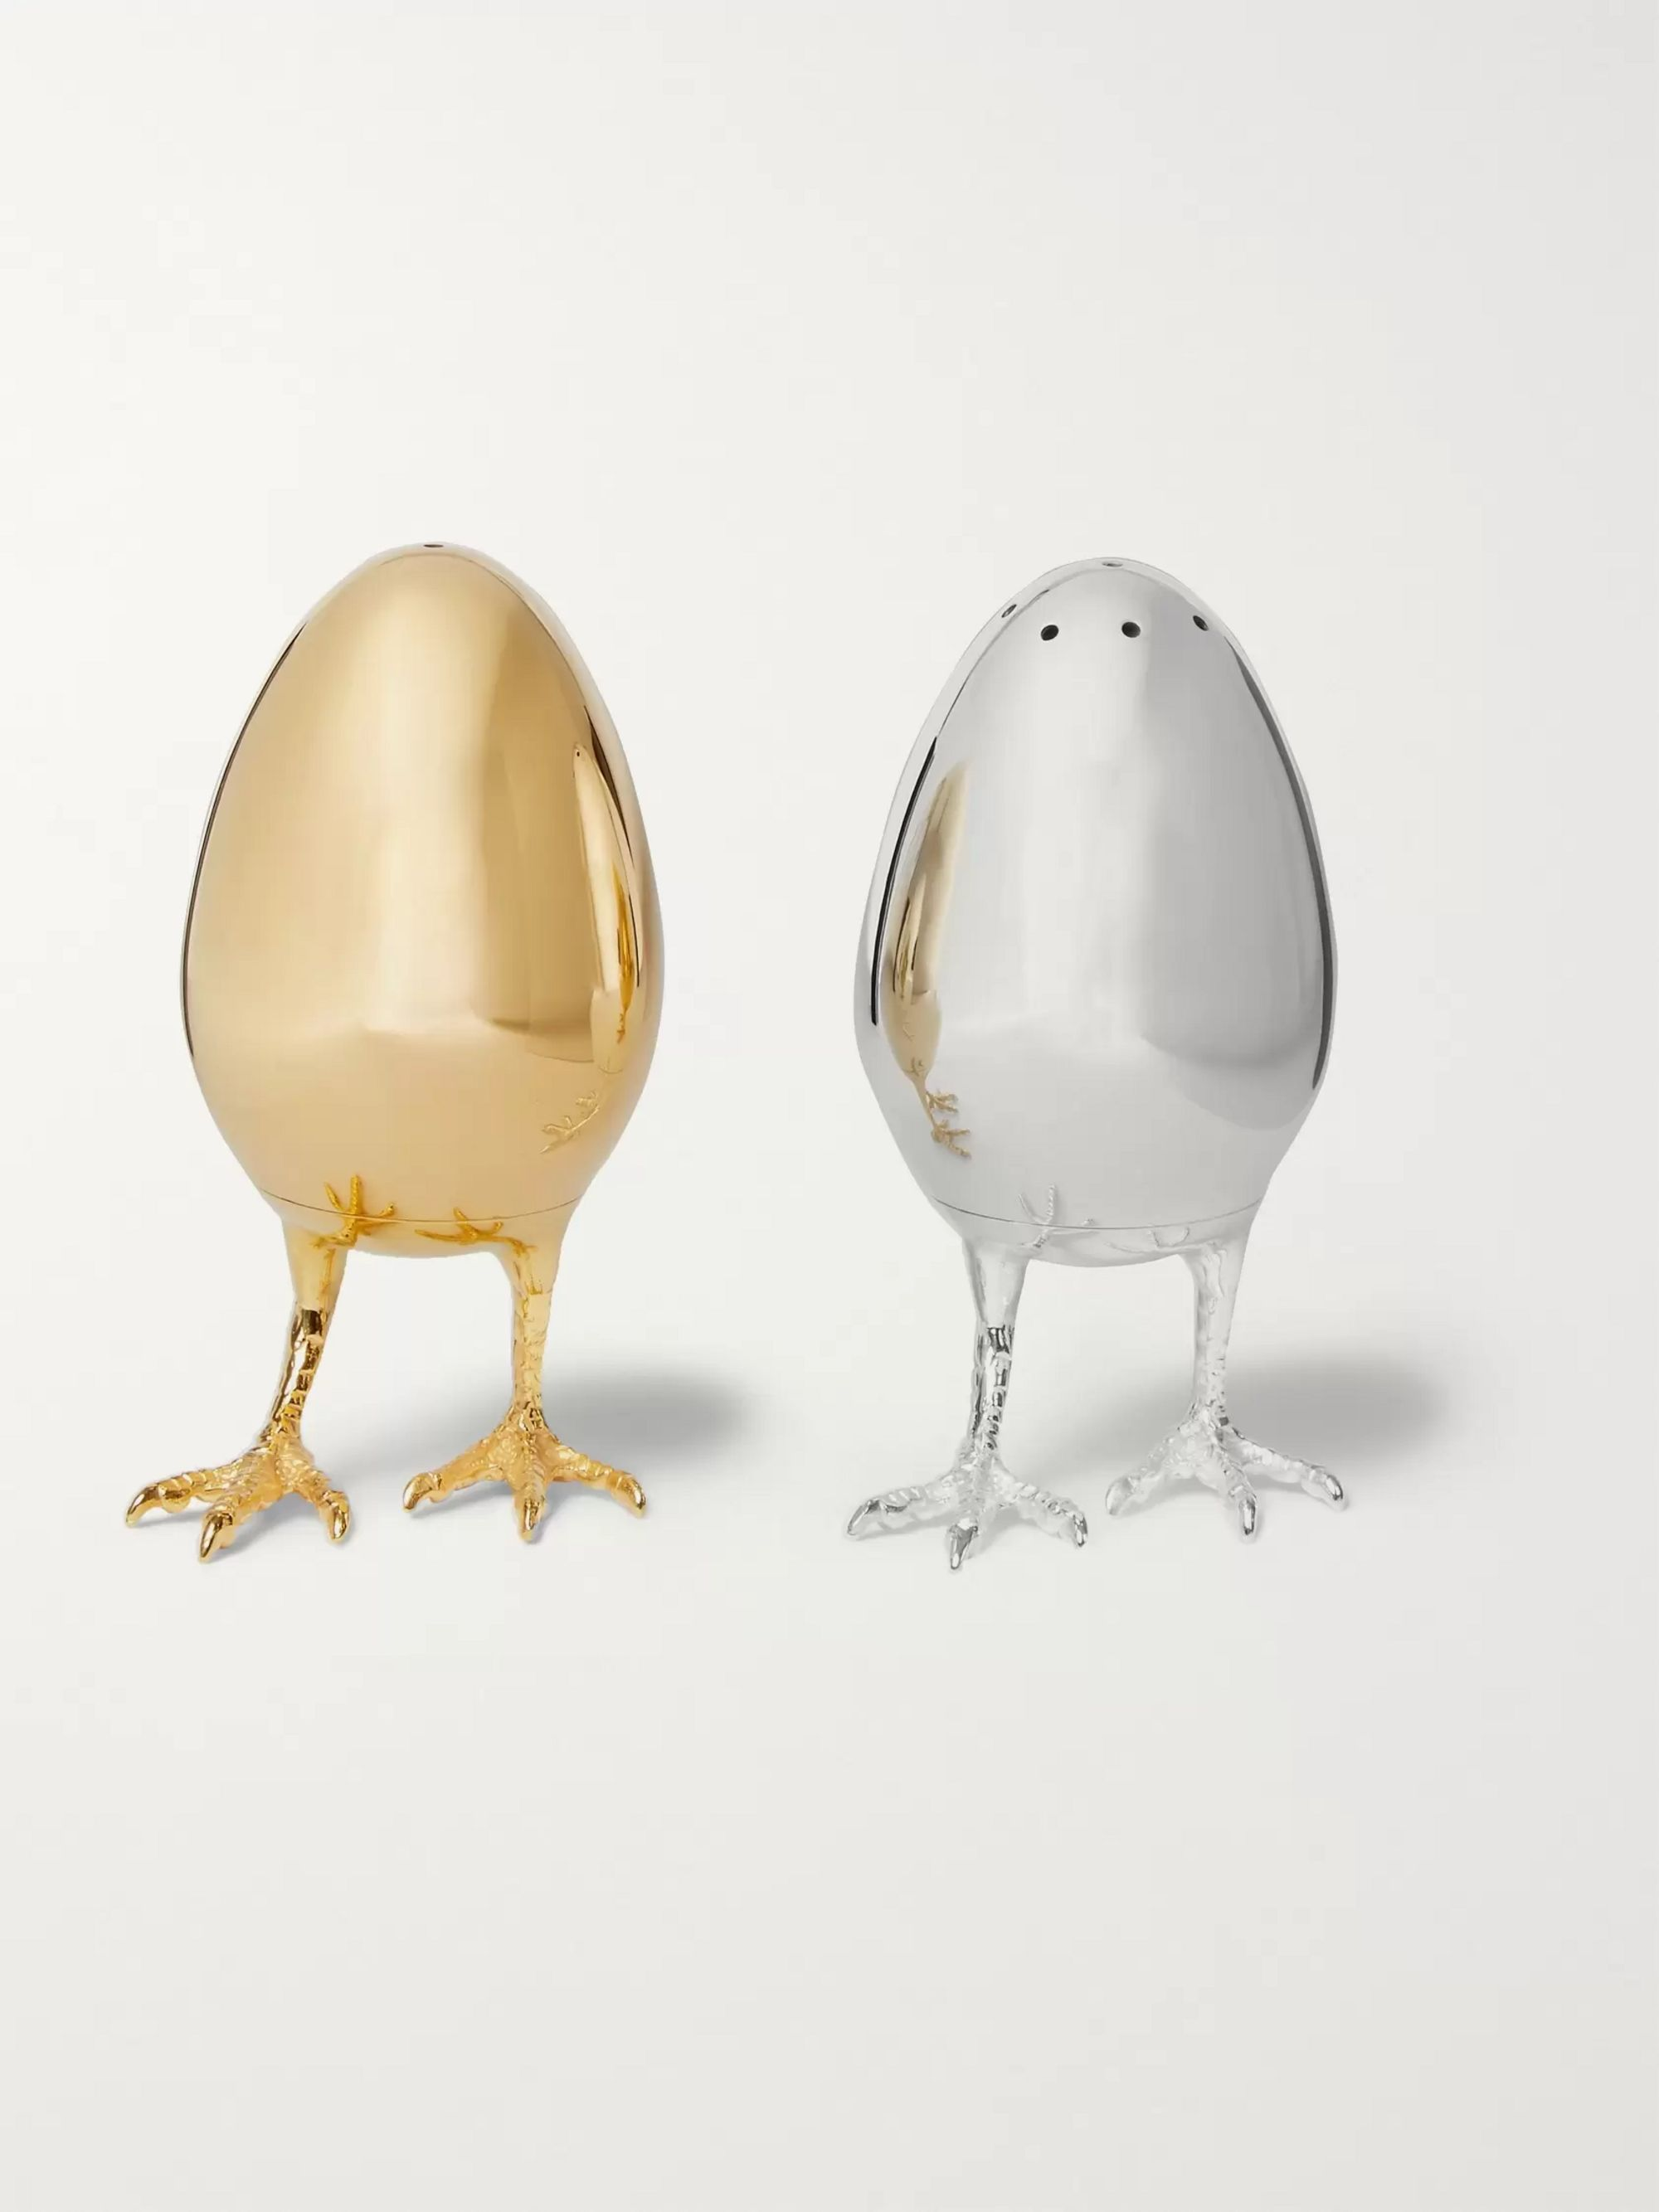 Asprey Sterling Silver and Gold-Gilded Salt and Pepper Shakers